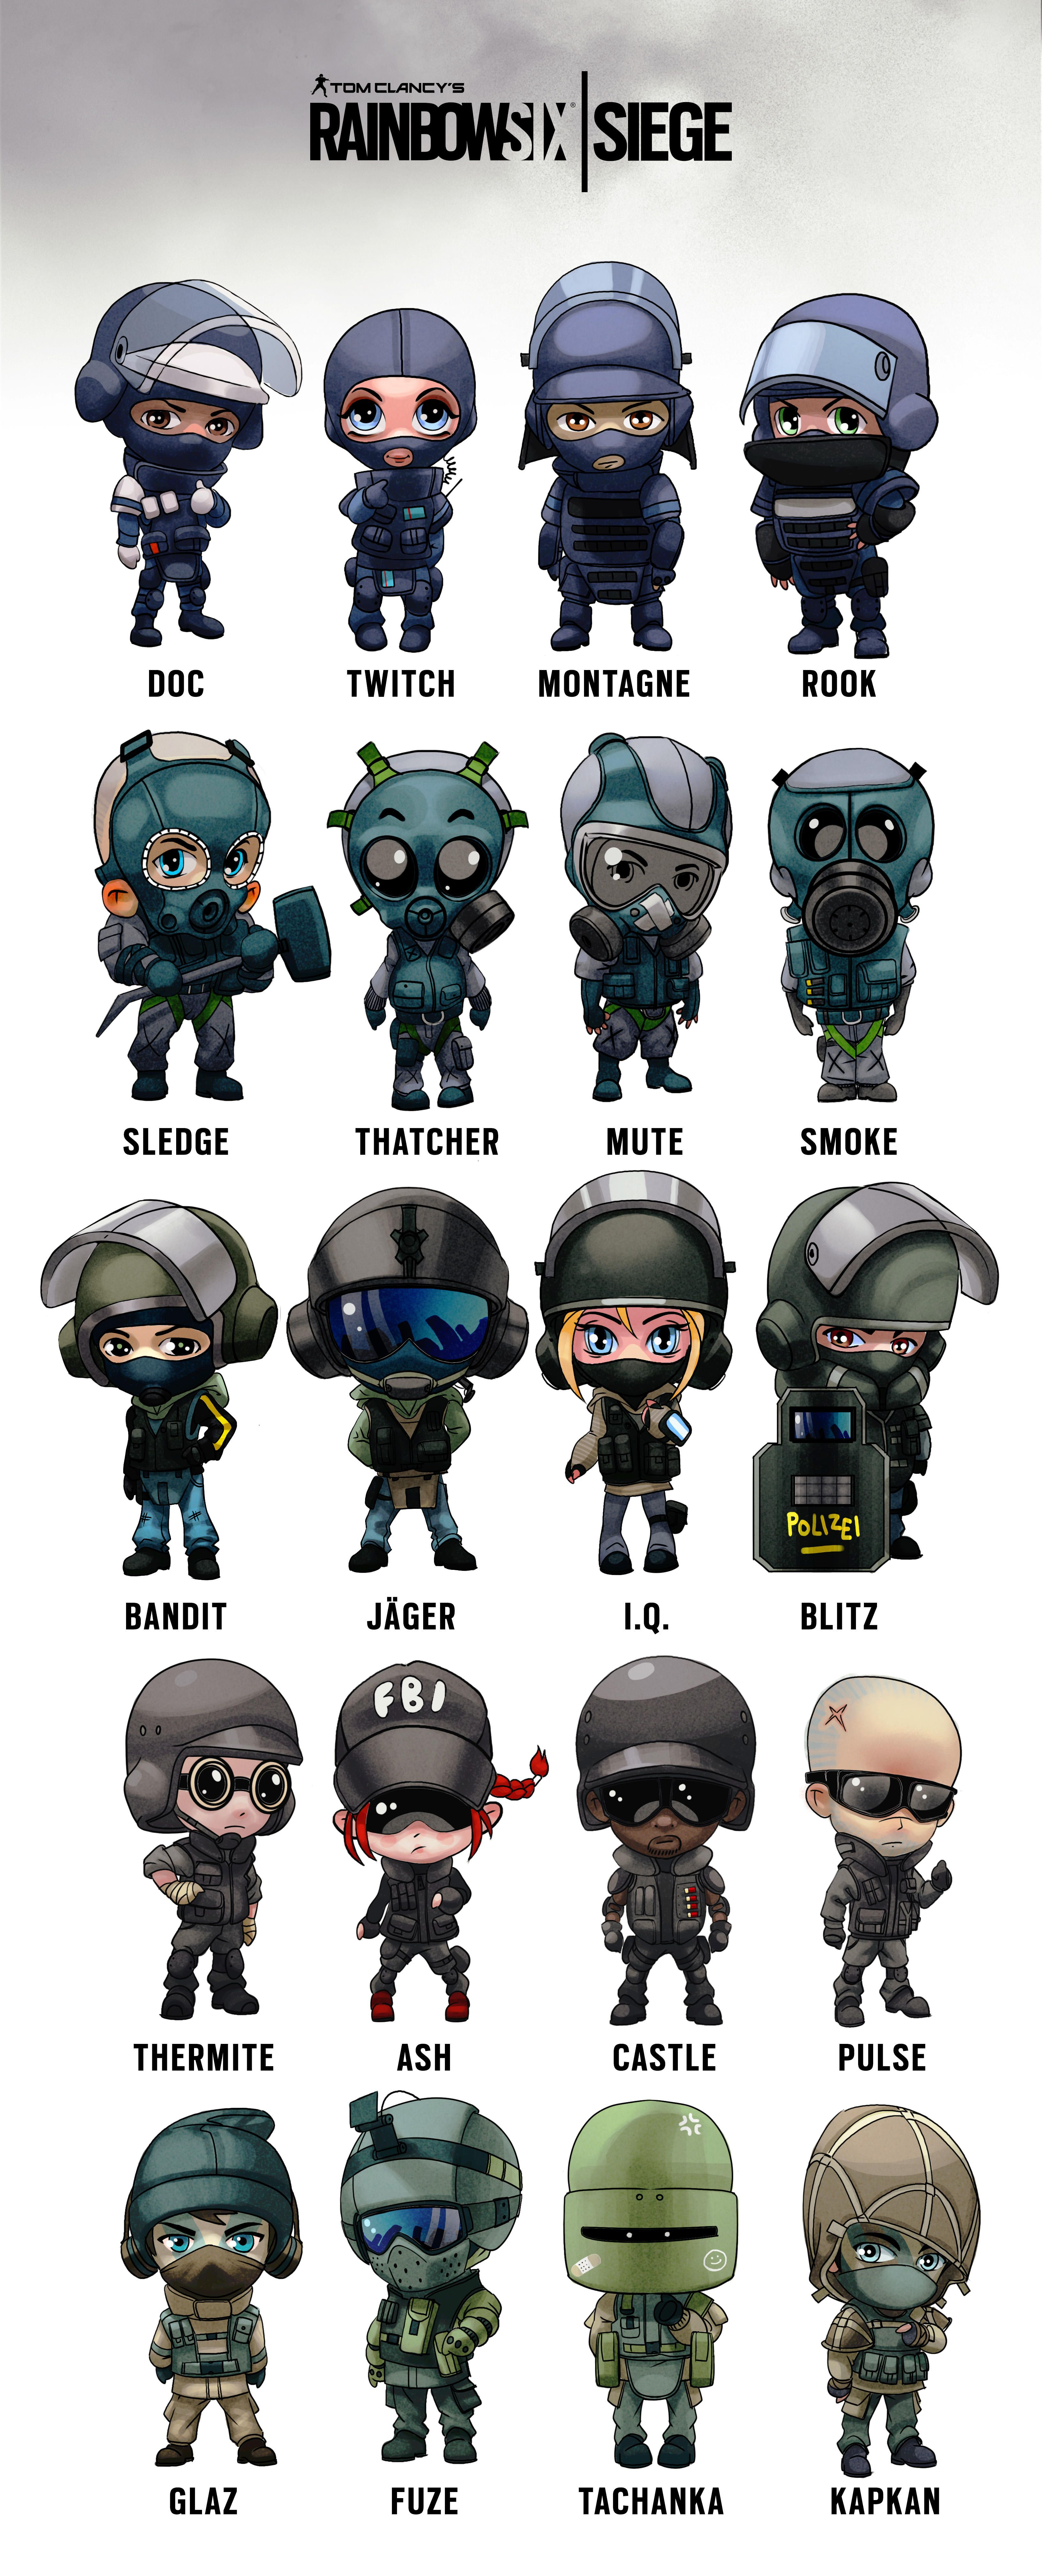 Chibi Operator Poster R6s Questionable Stuff Tom